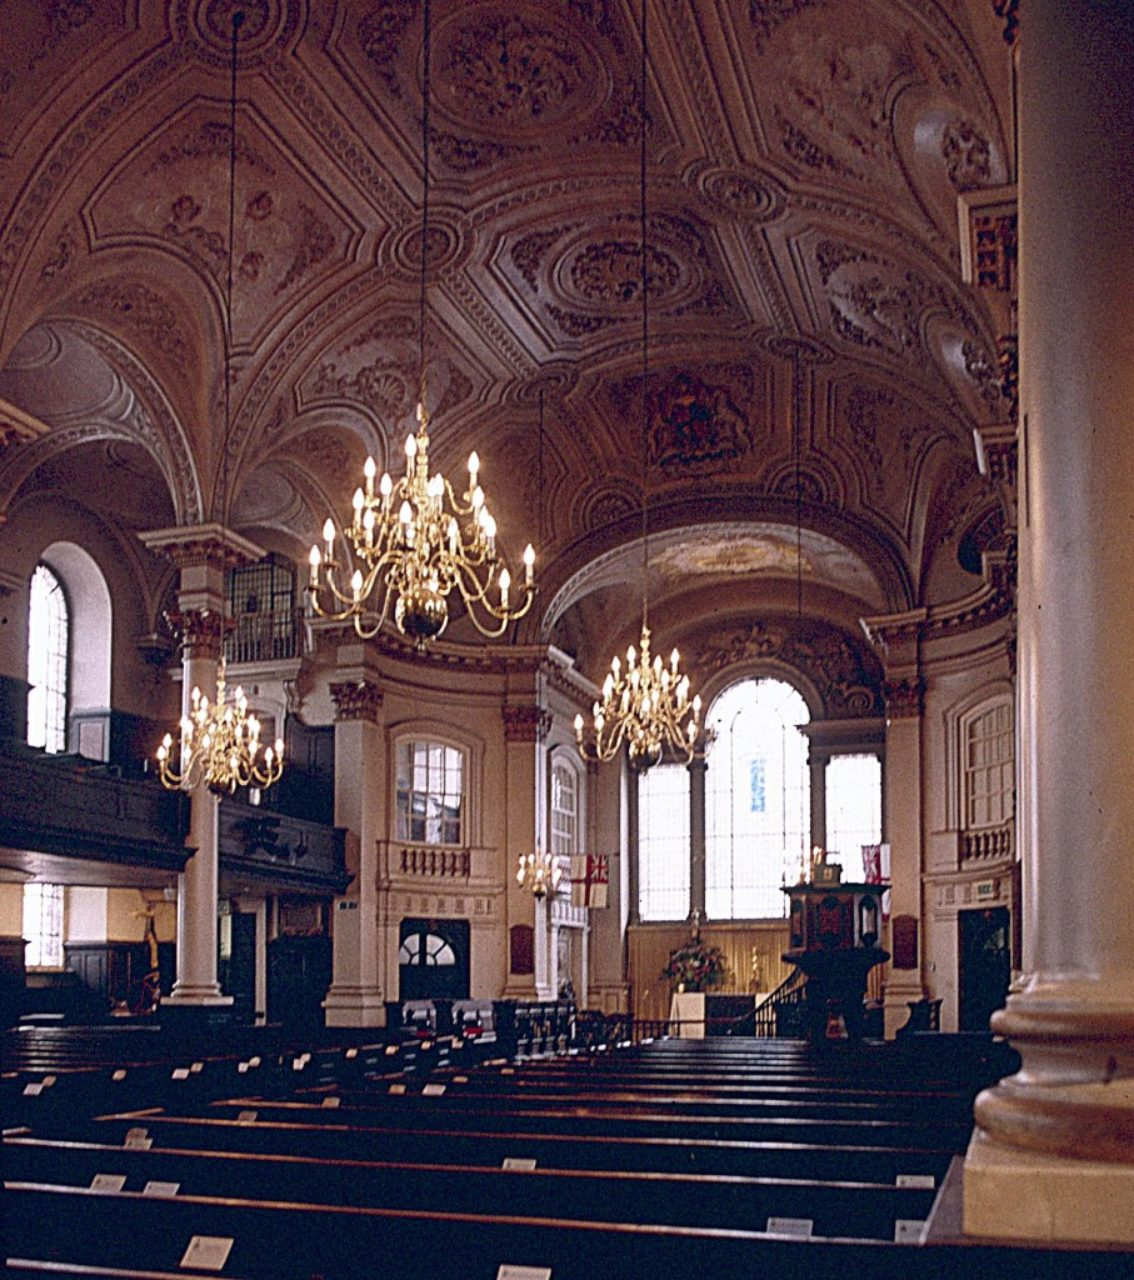 St. Martin-in-the-Fields, interior